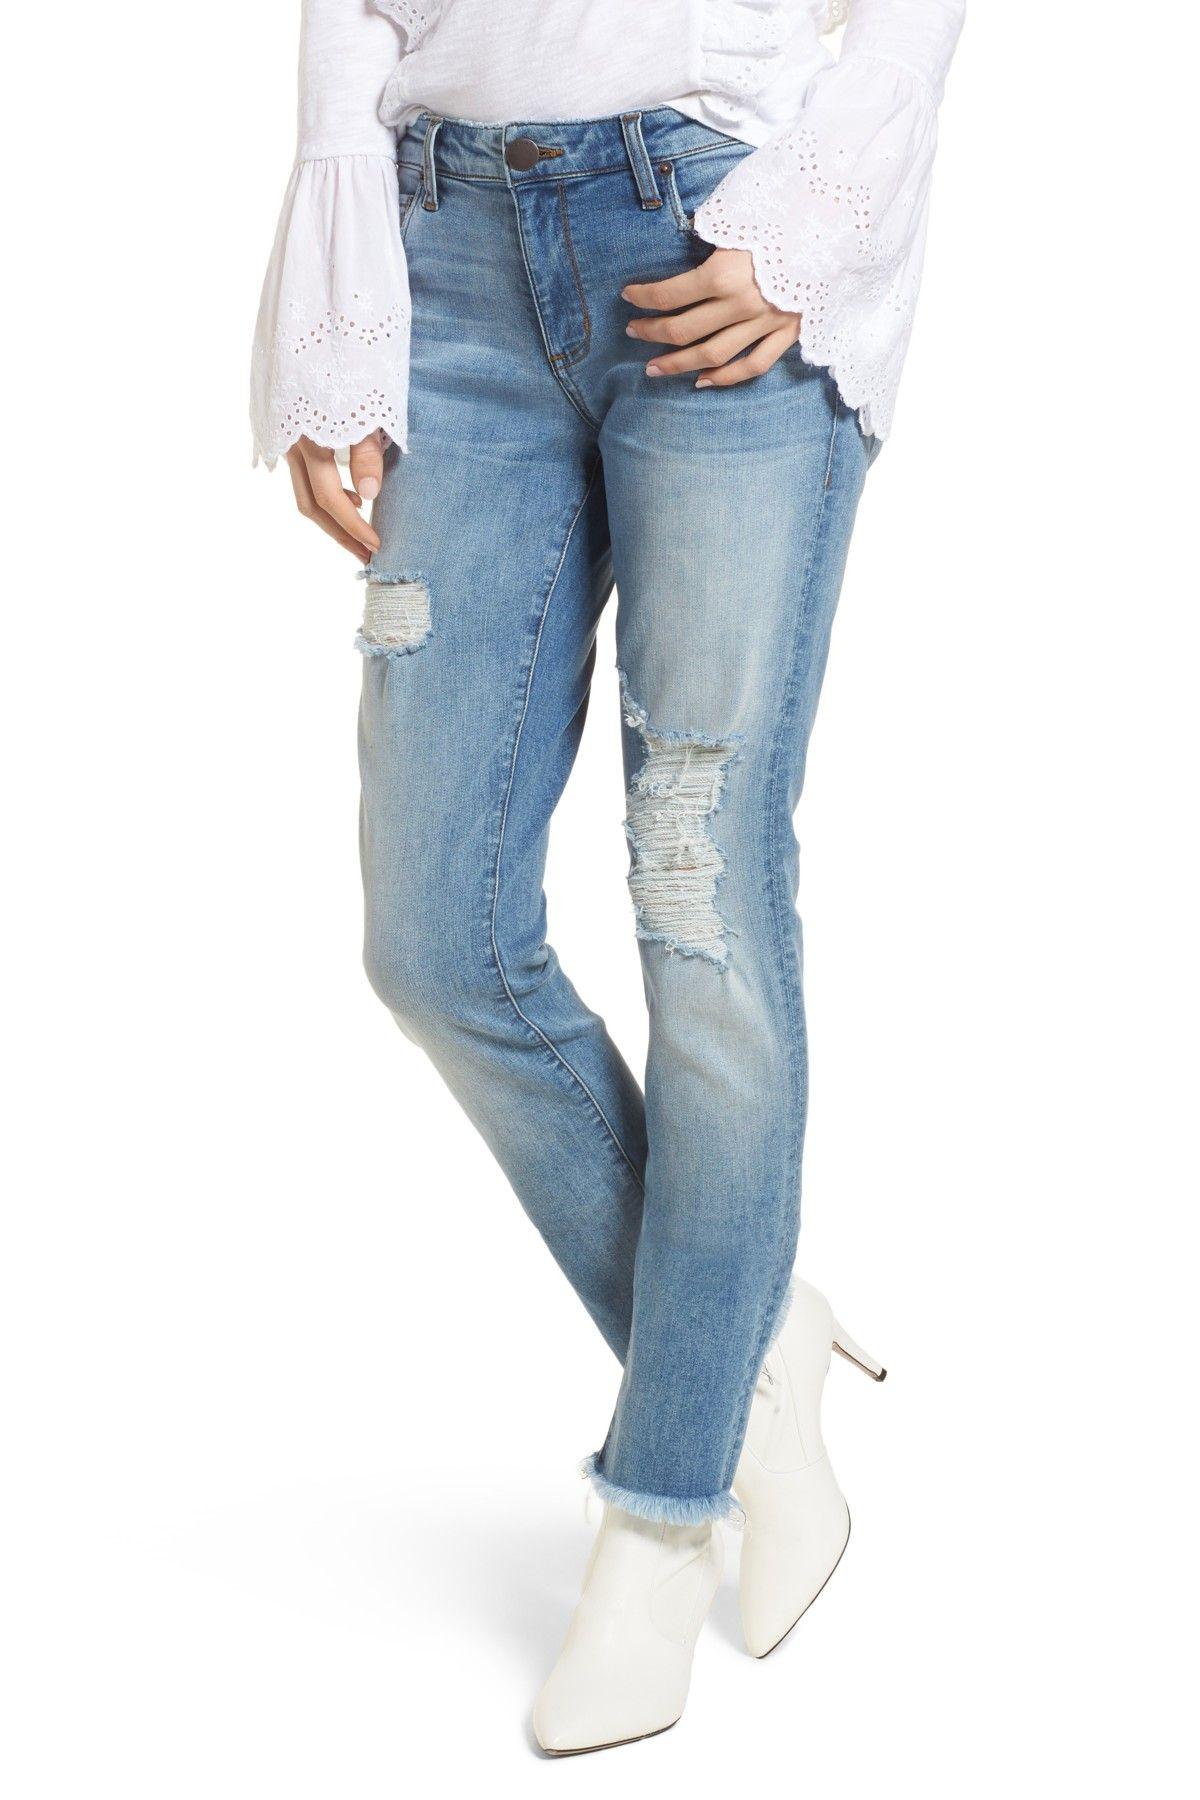 STS BLUE Taylor Distressed Tomboy Jeans Womens